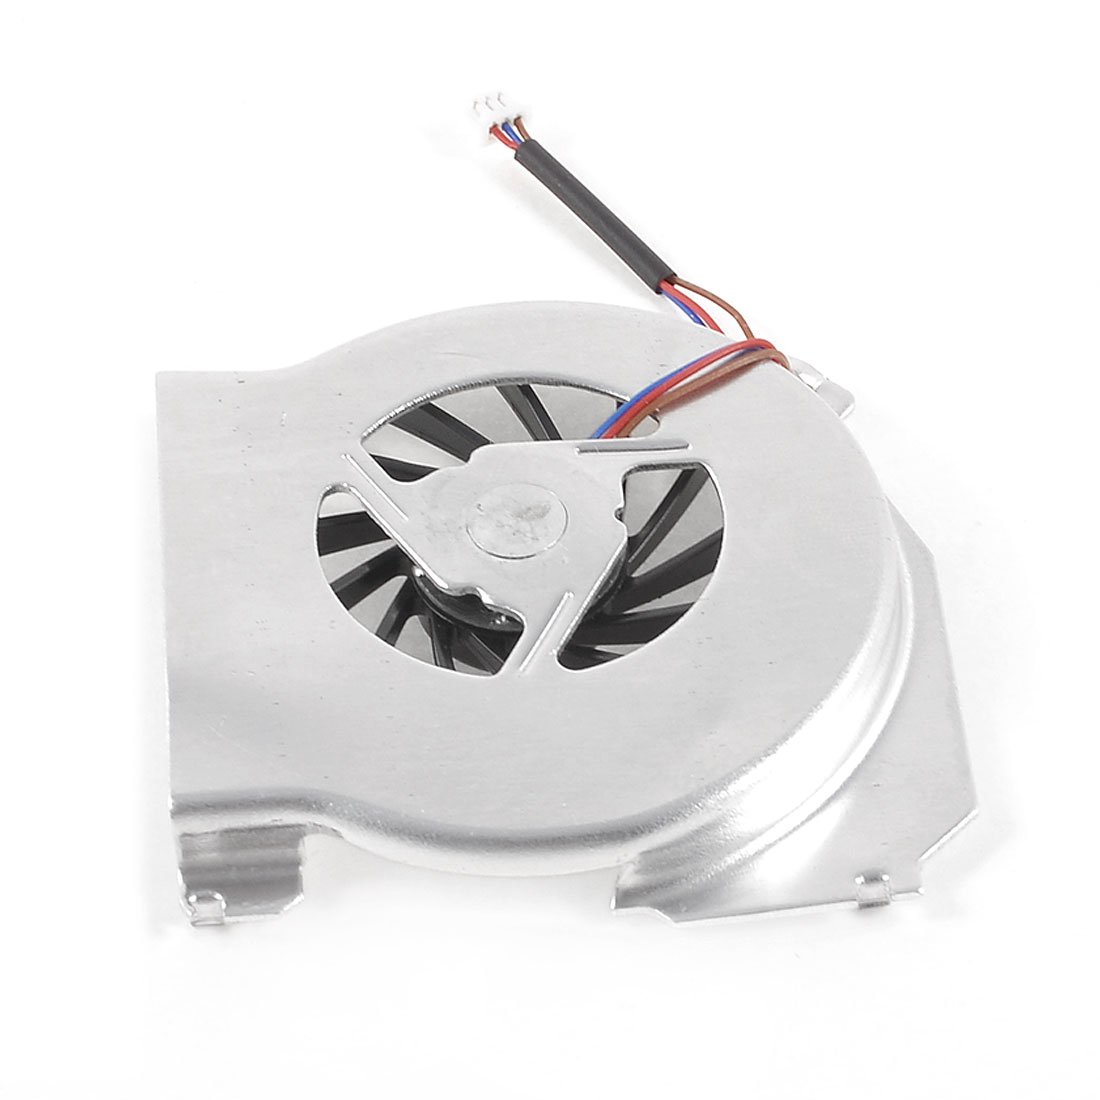 Notebook Brushless Bearing CPU Cooling Fan for IBM T40 T41 T42 T41P T42P T43